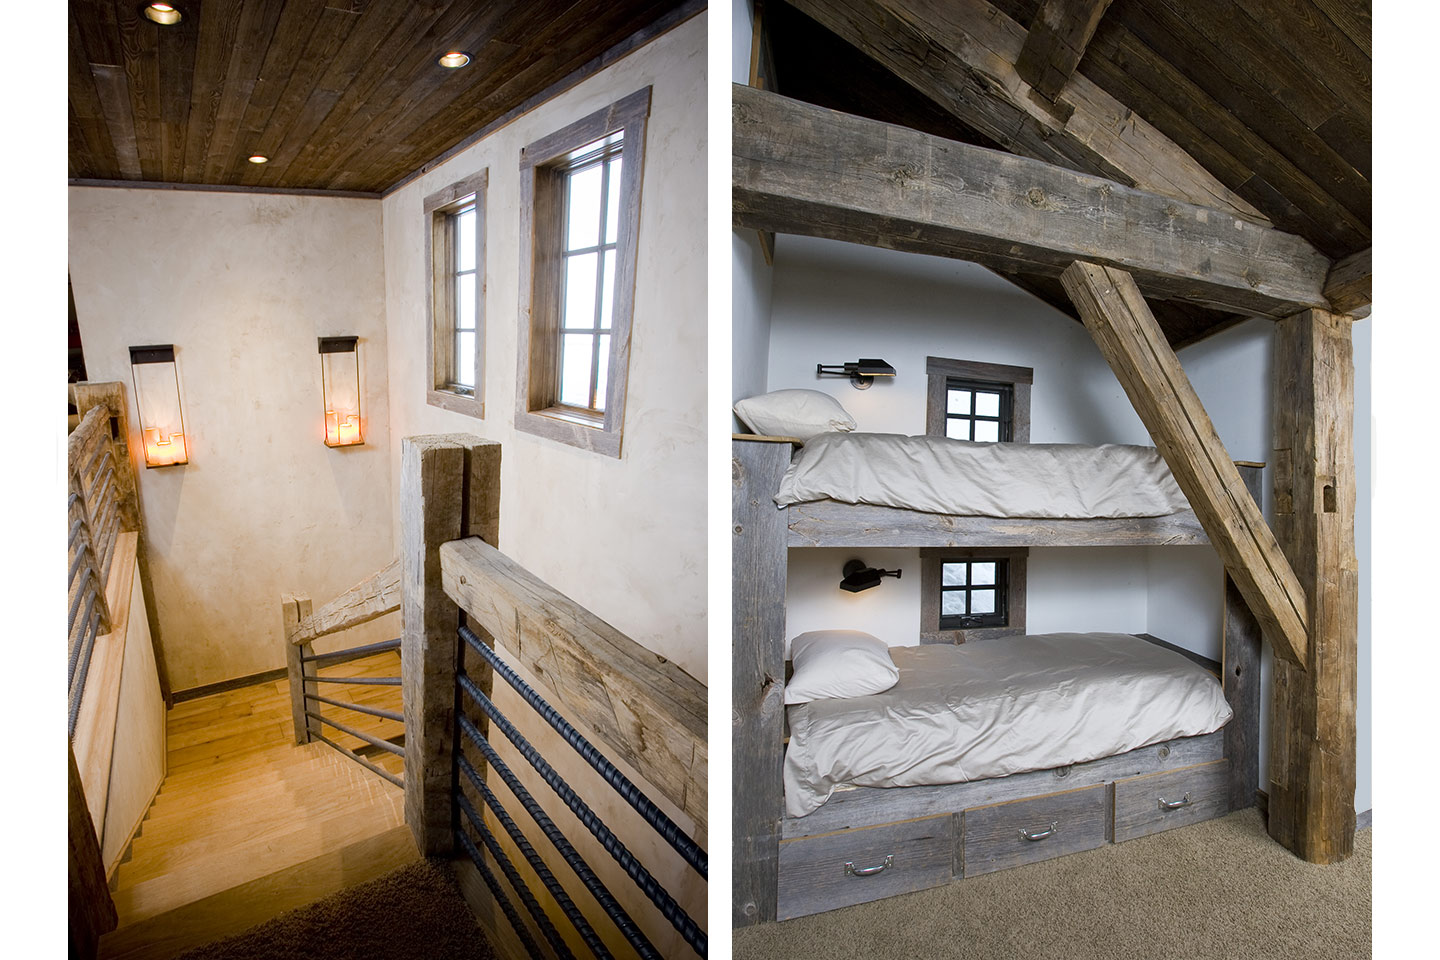 Staircase and bunk beds